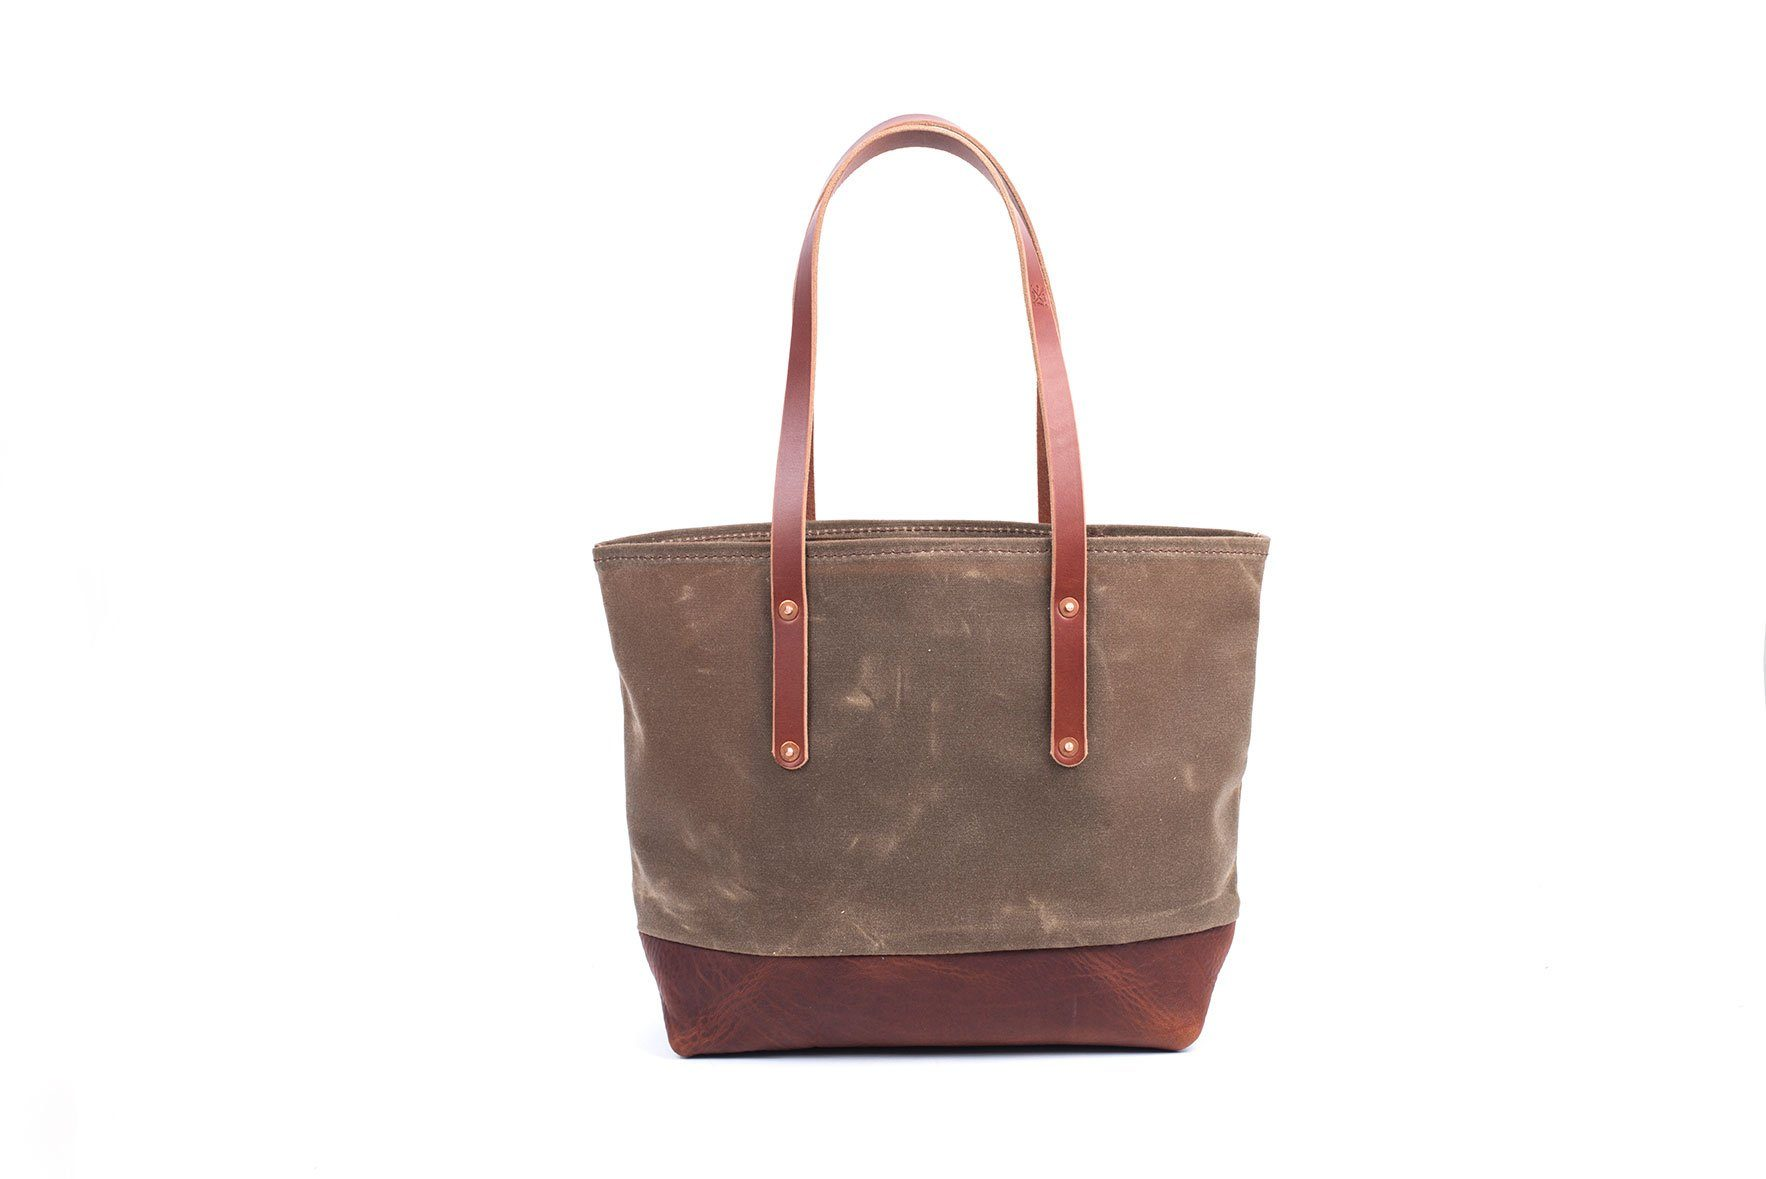 AVERY WAXED CANVAS TOTE BAG - MEDIUM